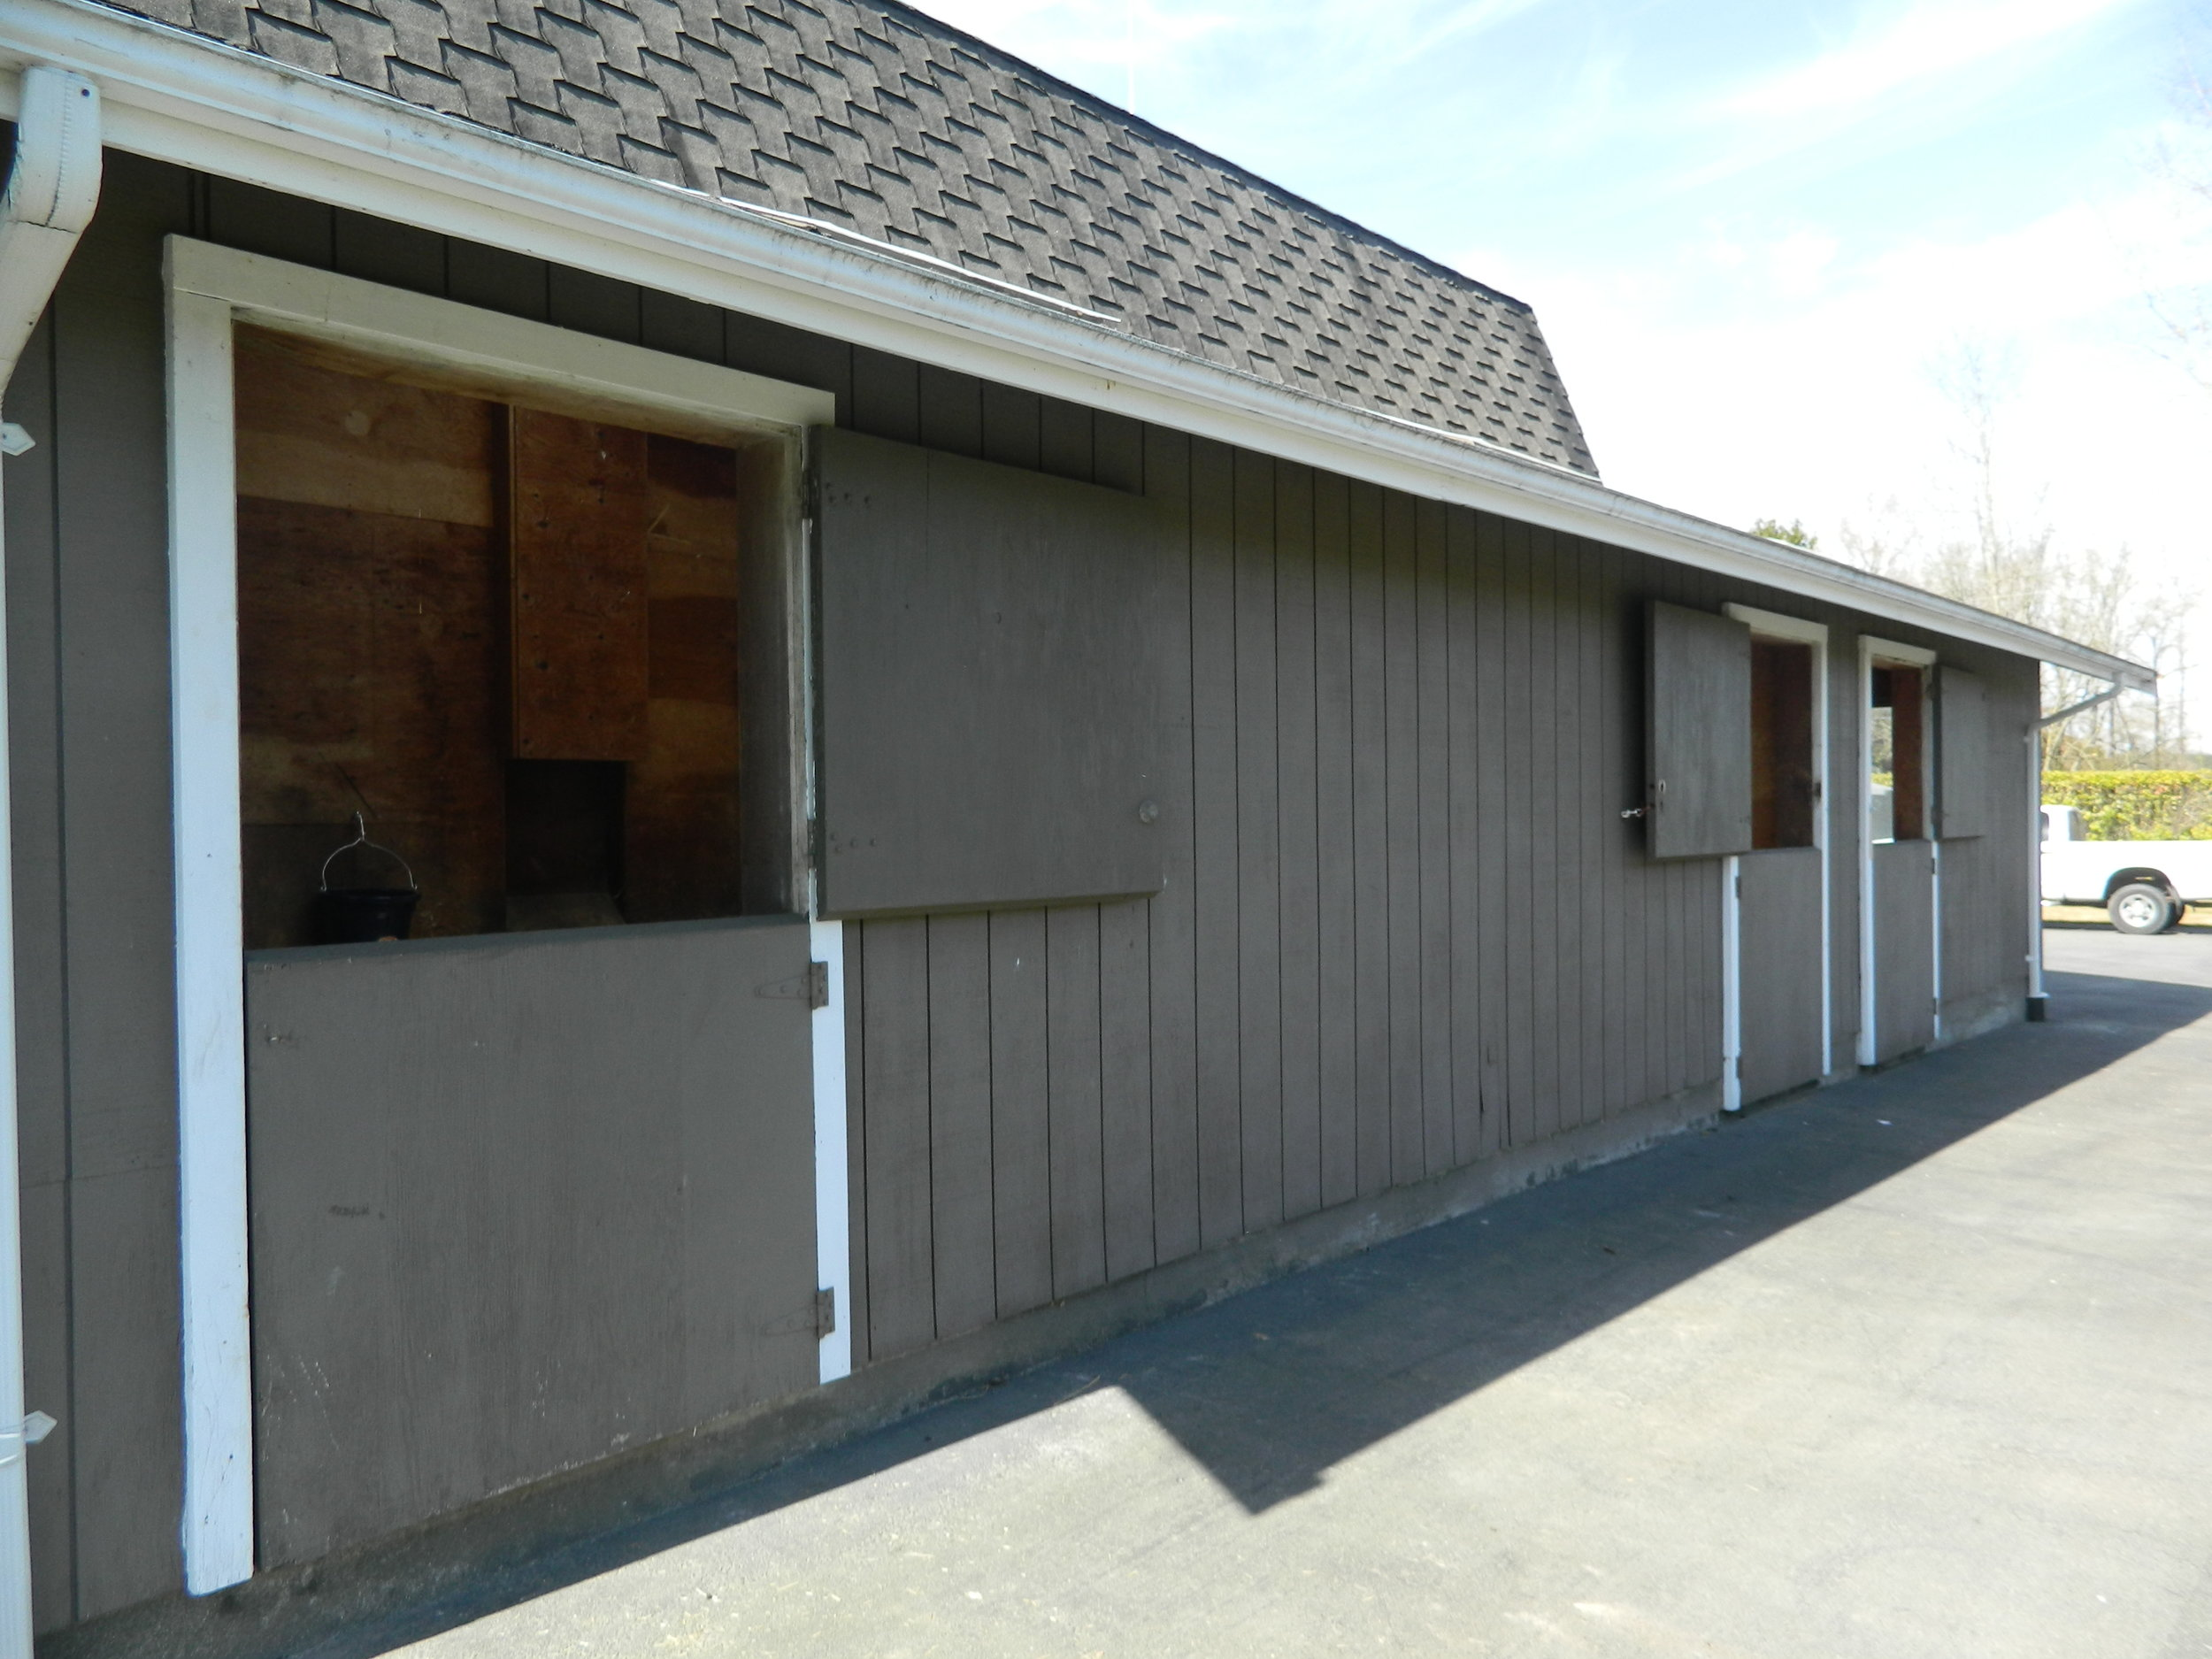 - The 5-stall barn